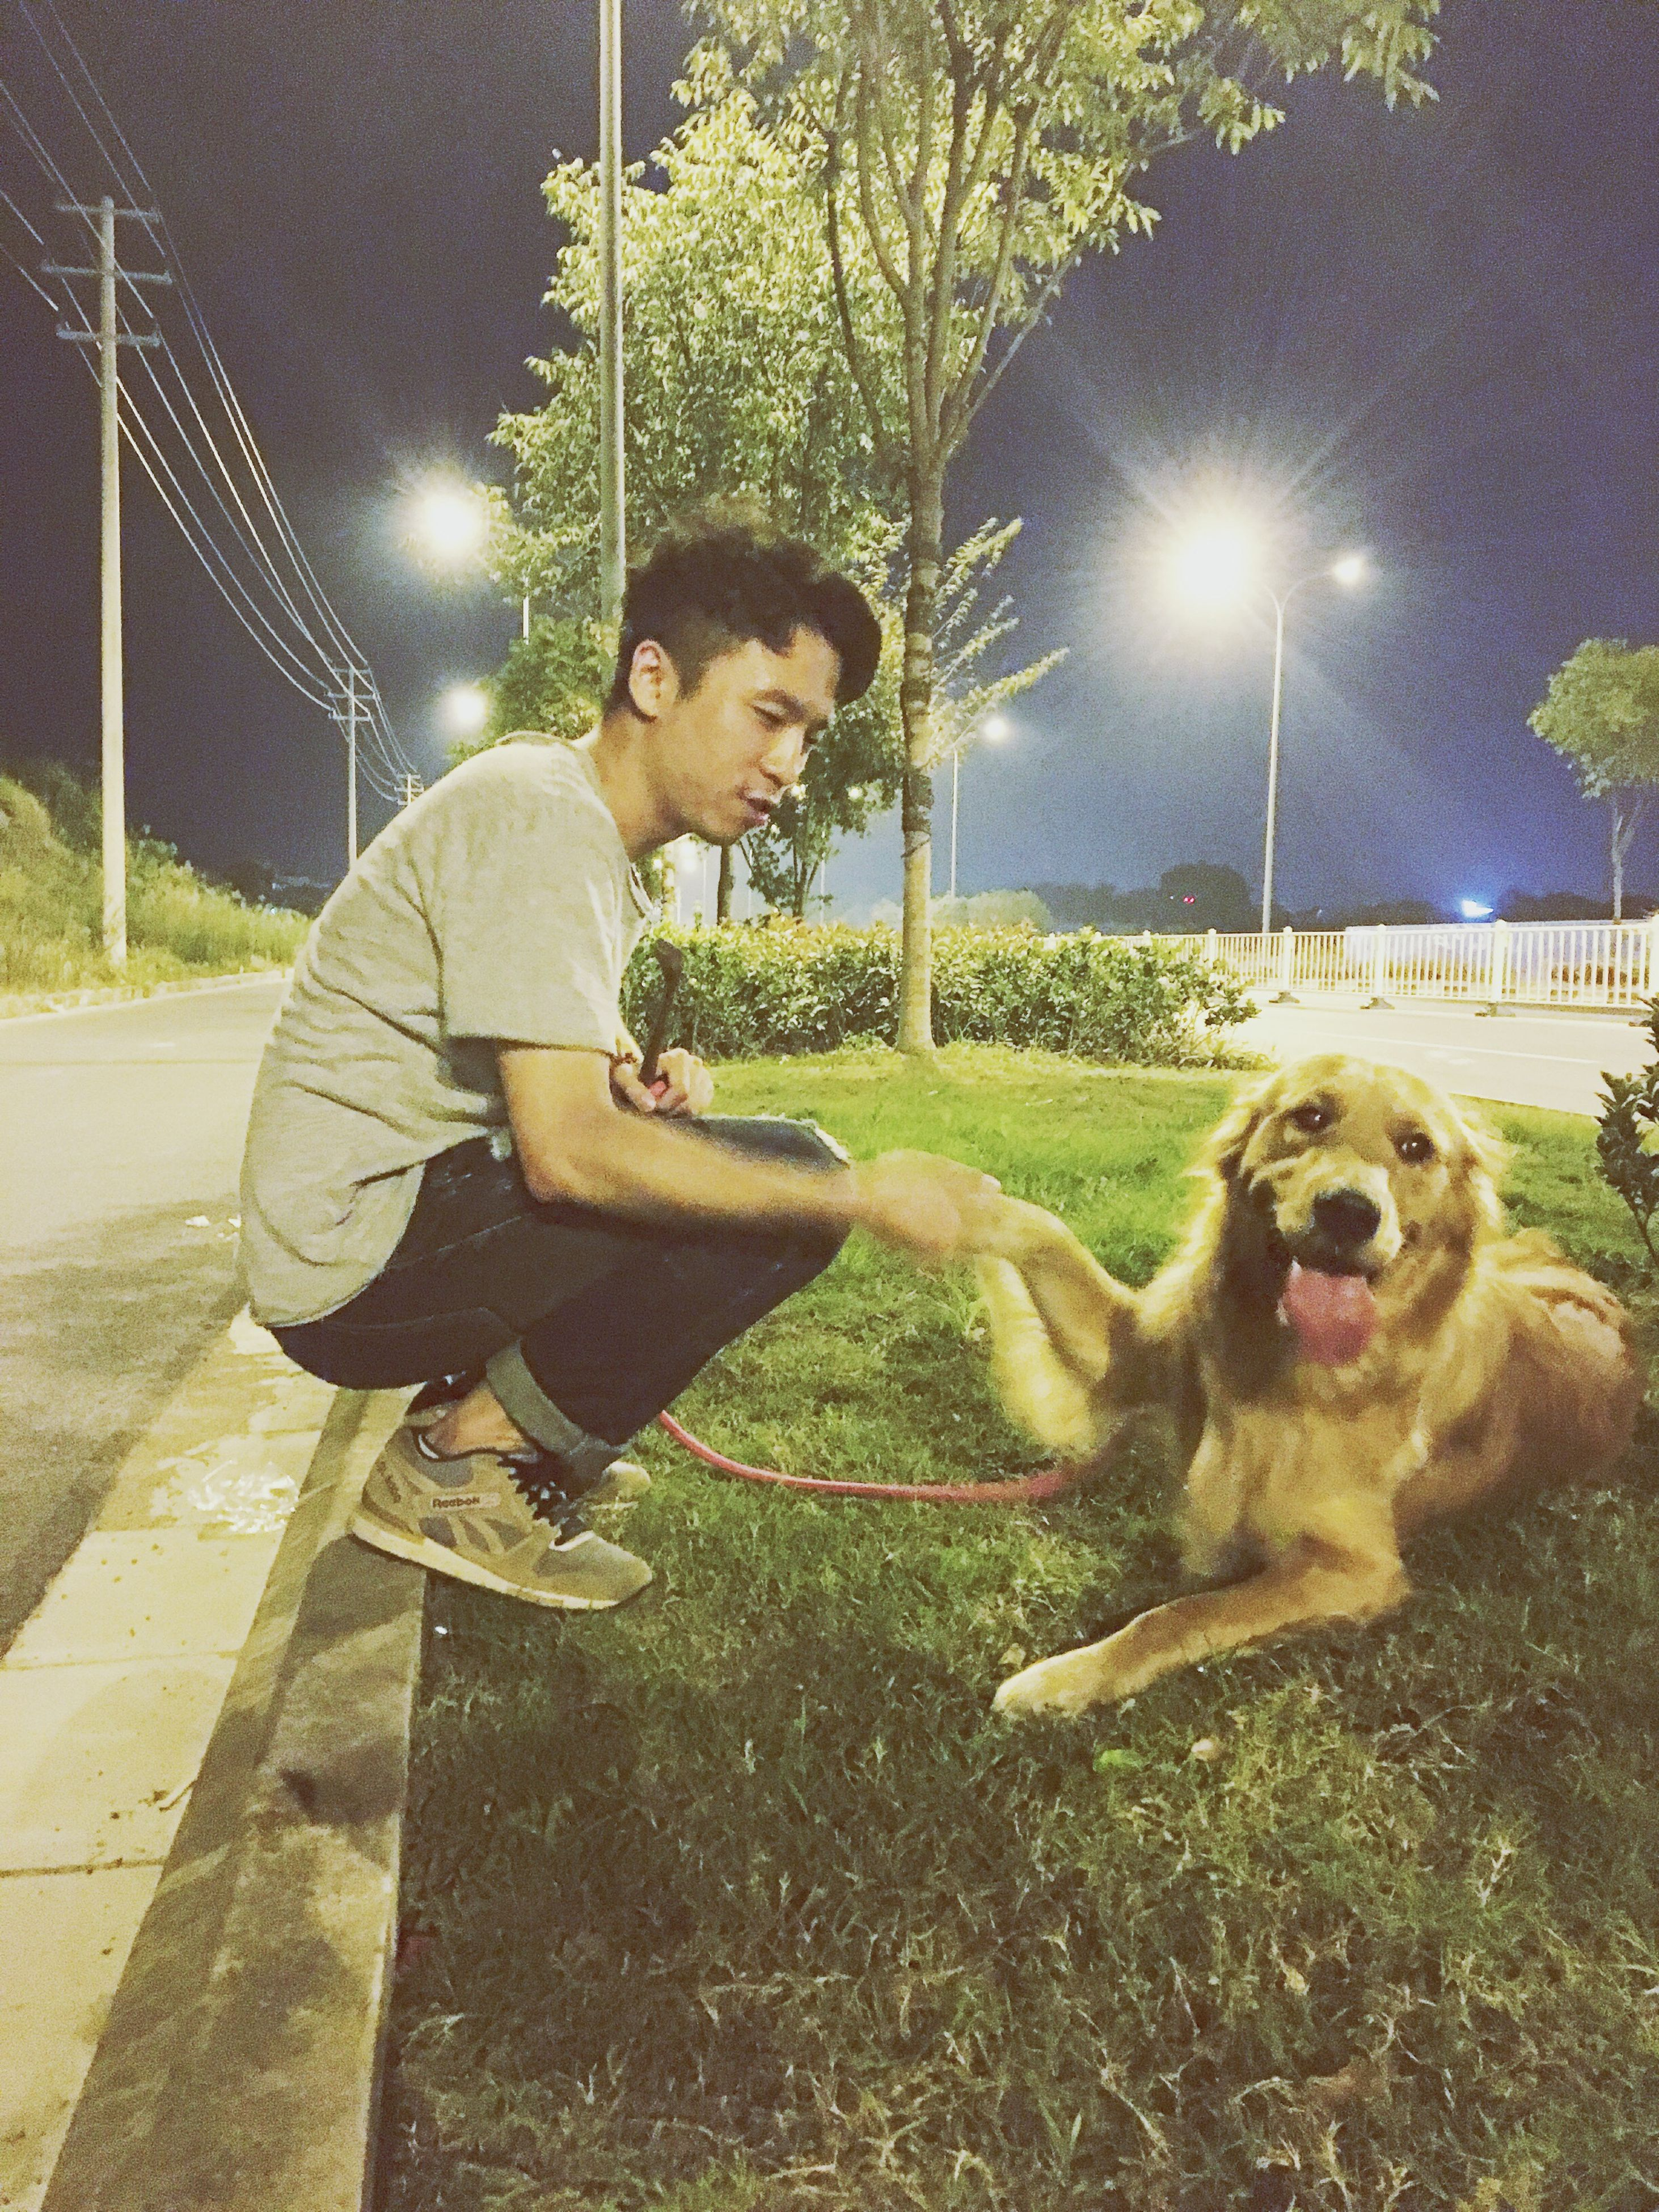 dog, lifestyles, illuminated, leisure activity, pets, tree, casual clothing, grass, full length, night, person, one animal, park - man made space, mammal, childhood, playing, domestic animals, sitting, elementary age, green color, innocence, field, outdoors, park